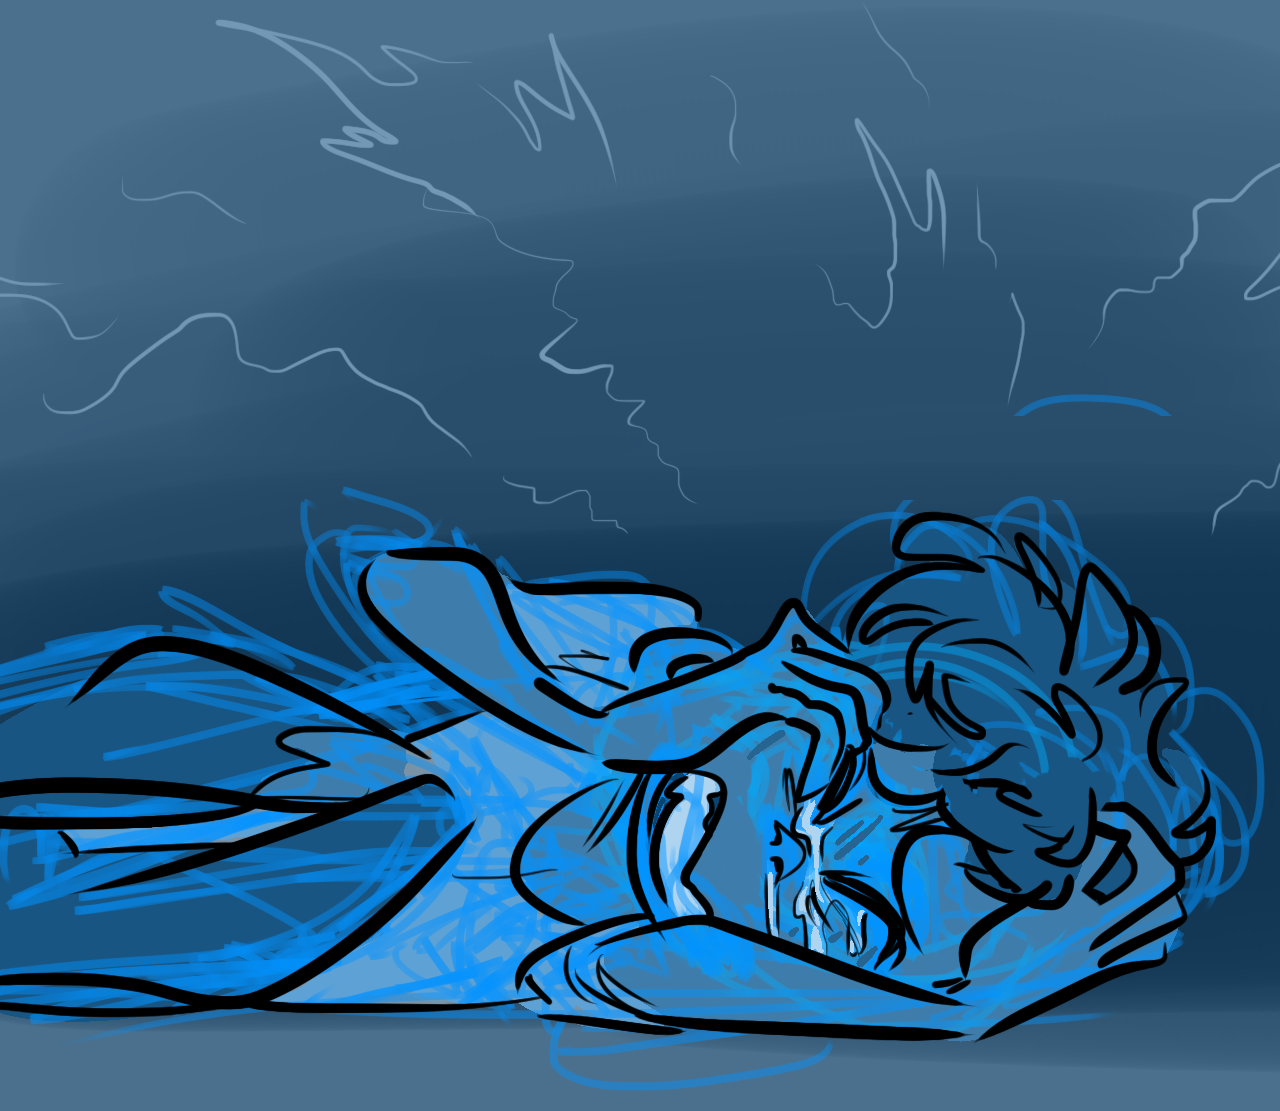 a trillion tremulous crying lars pics would be my brand